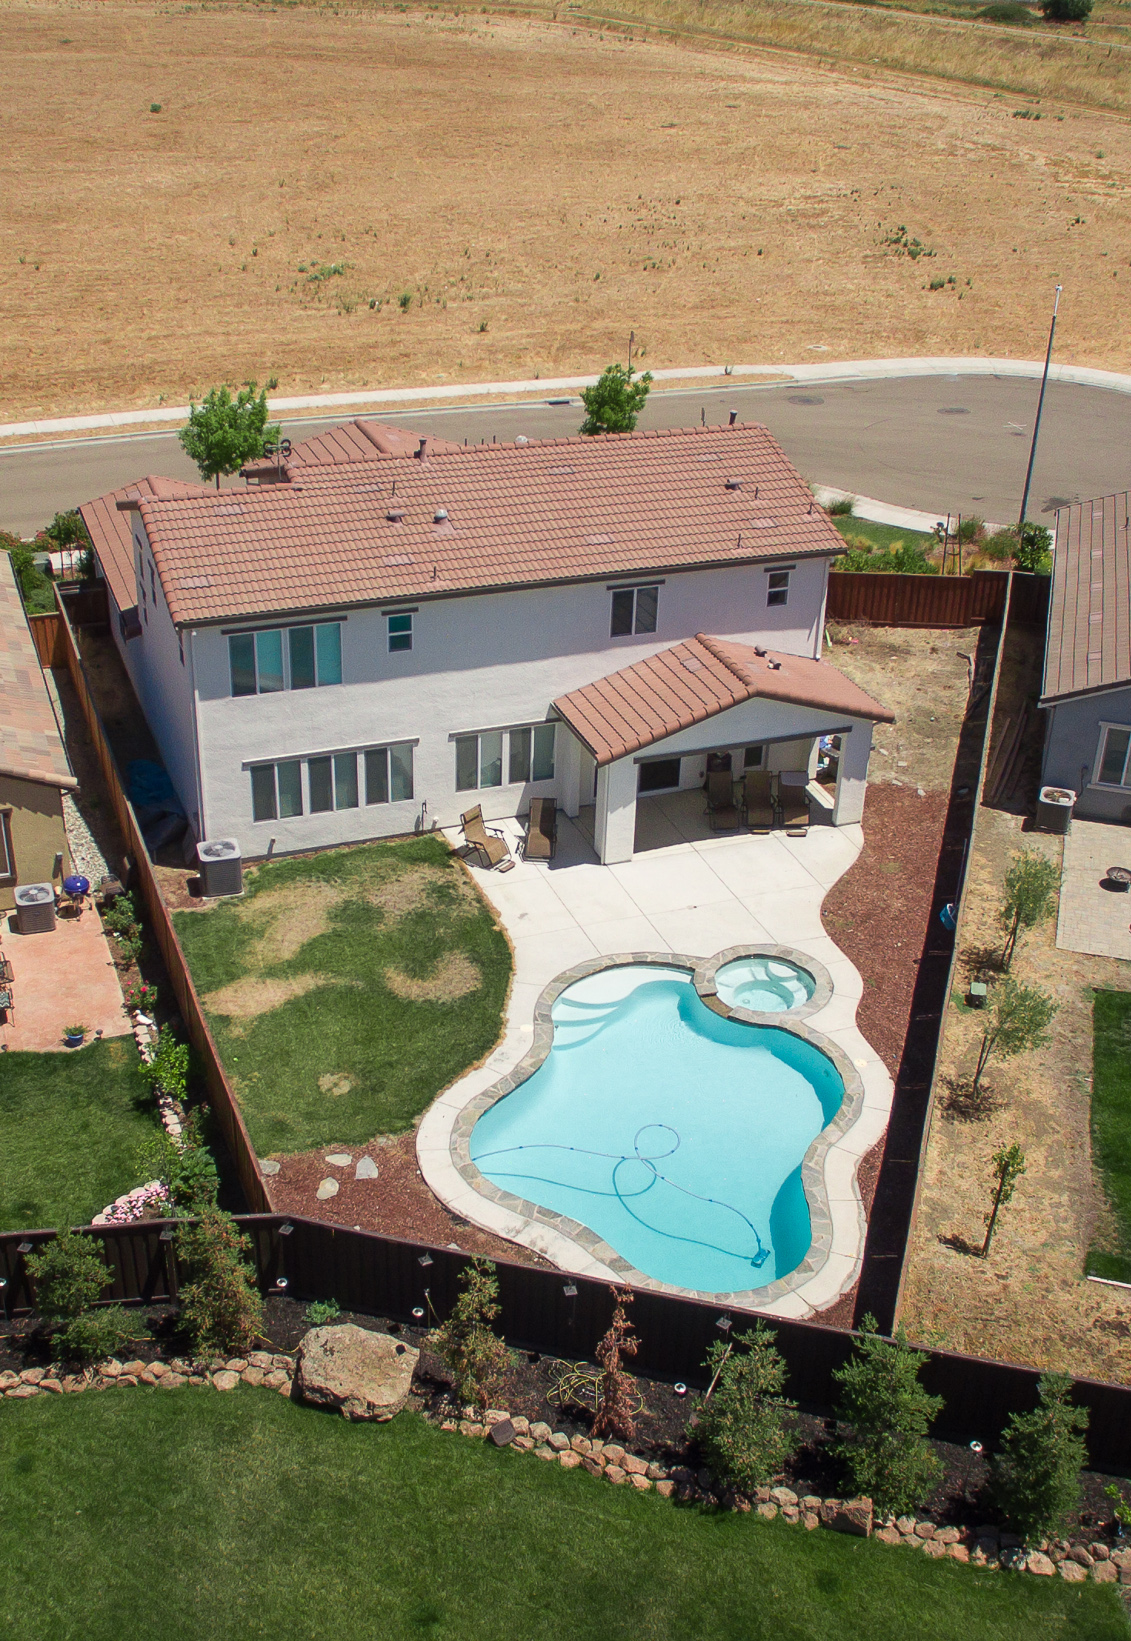 334 Watchtide Way - aerial_3.jpg